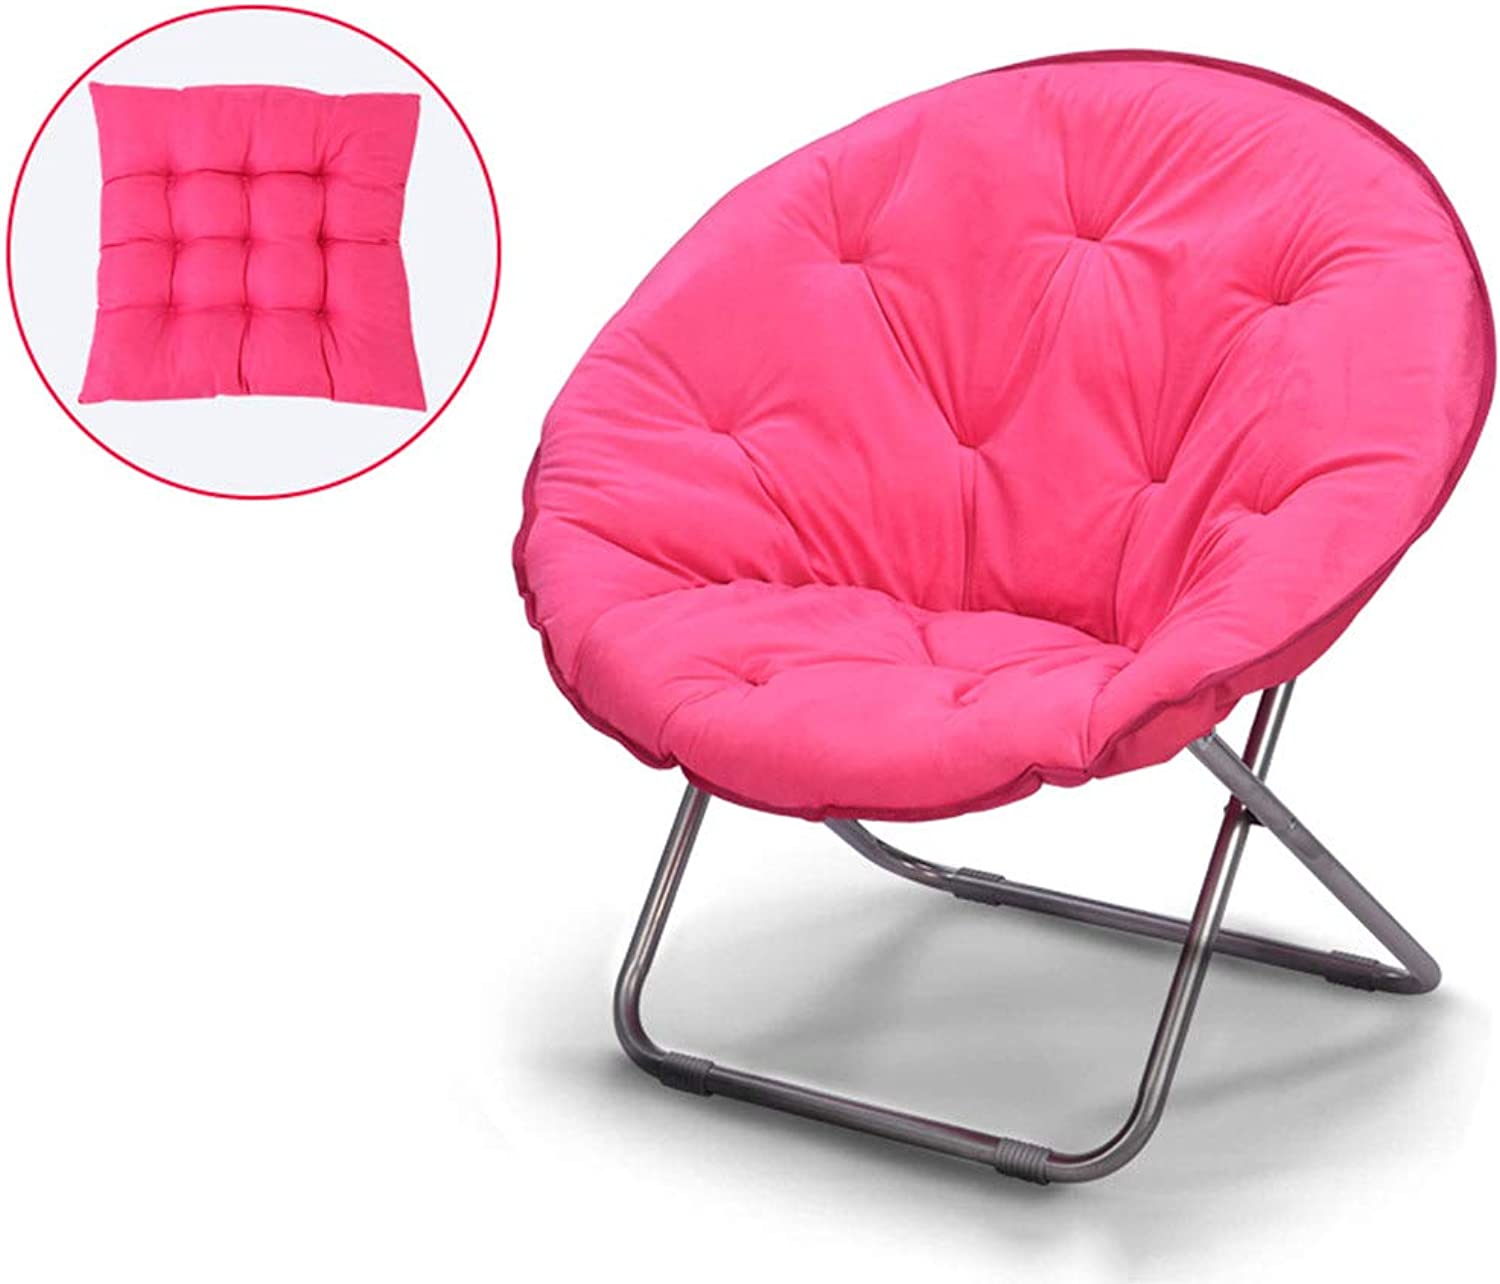 Moon Chair Adult Recliner Folding Chair Living Room Bedroom Bearing Major (not Removable) ( color   C )